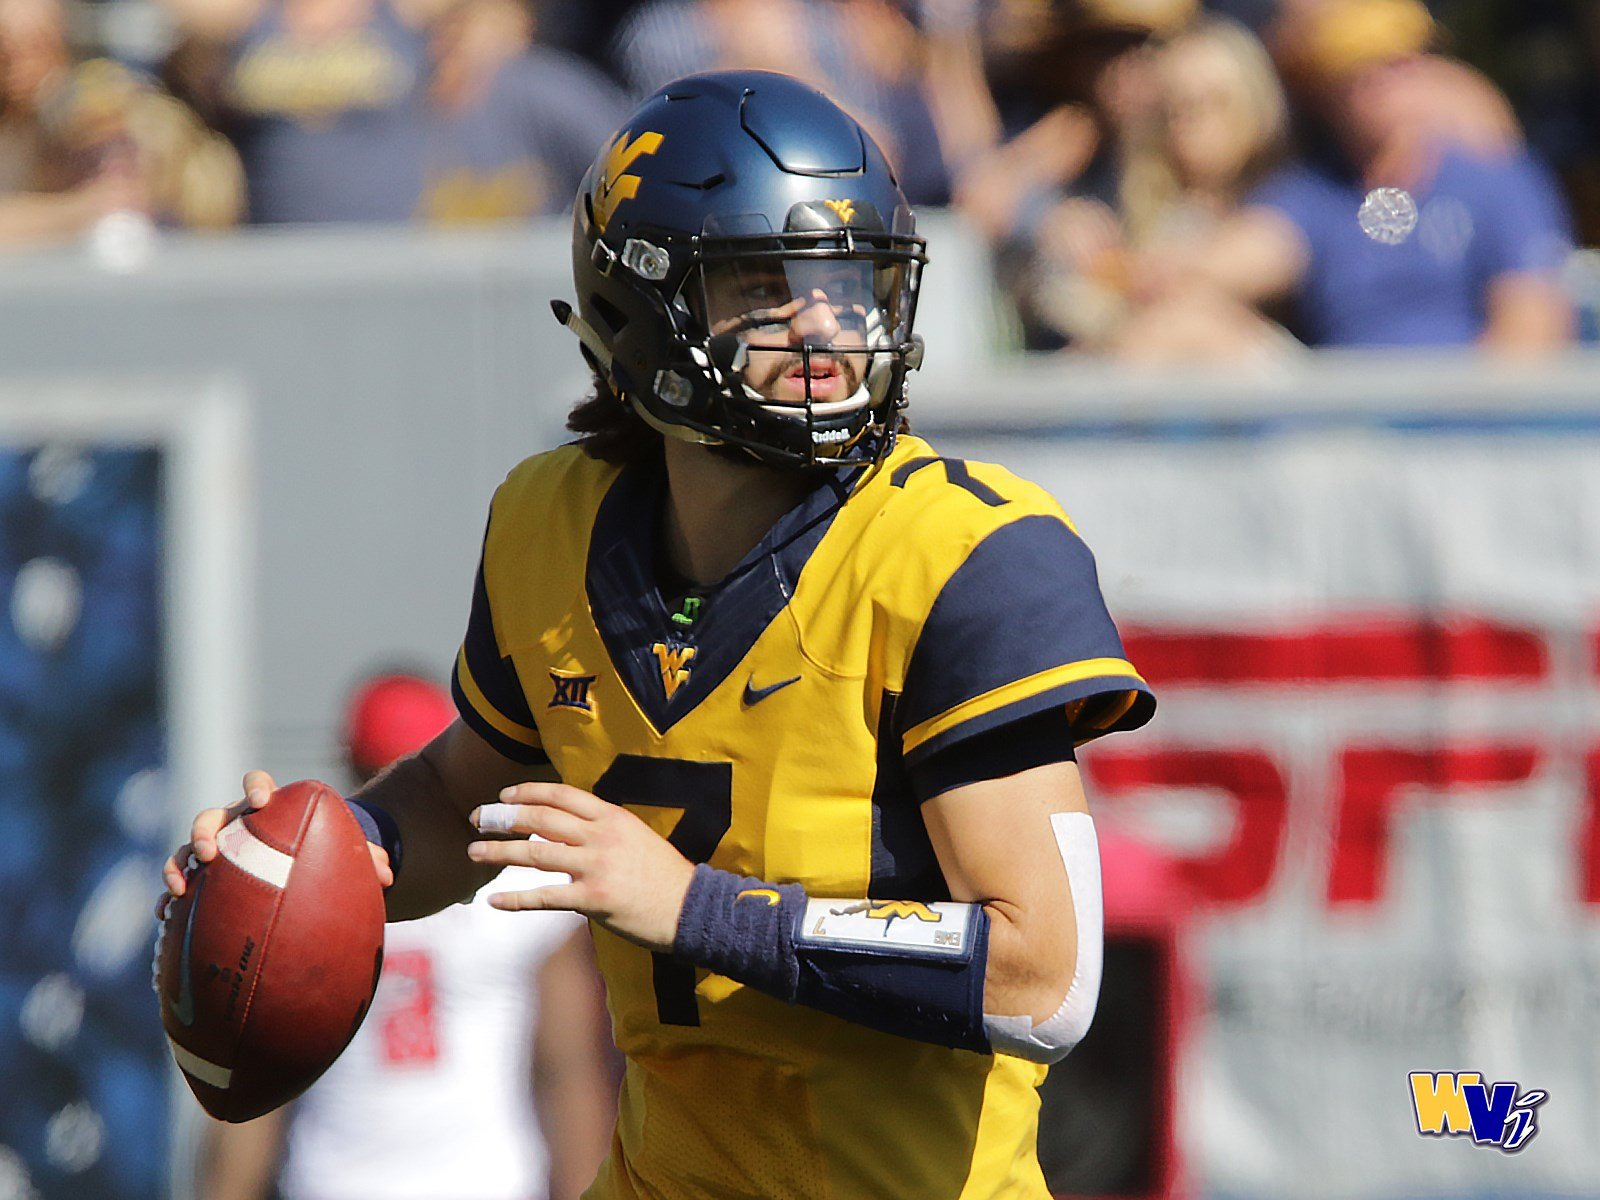 Will Grier leads the nation with 21 touchdown passes through six games for WVU this season. (PHOTO: Scott Lituchy)